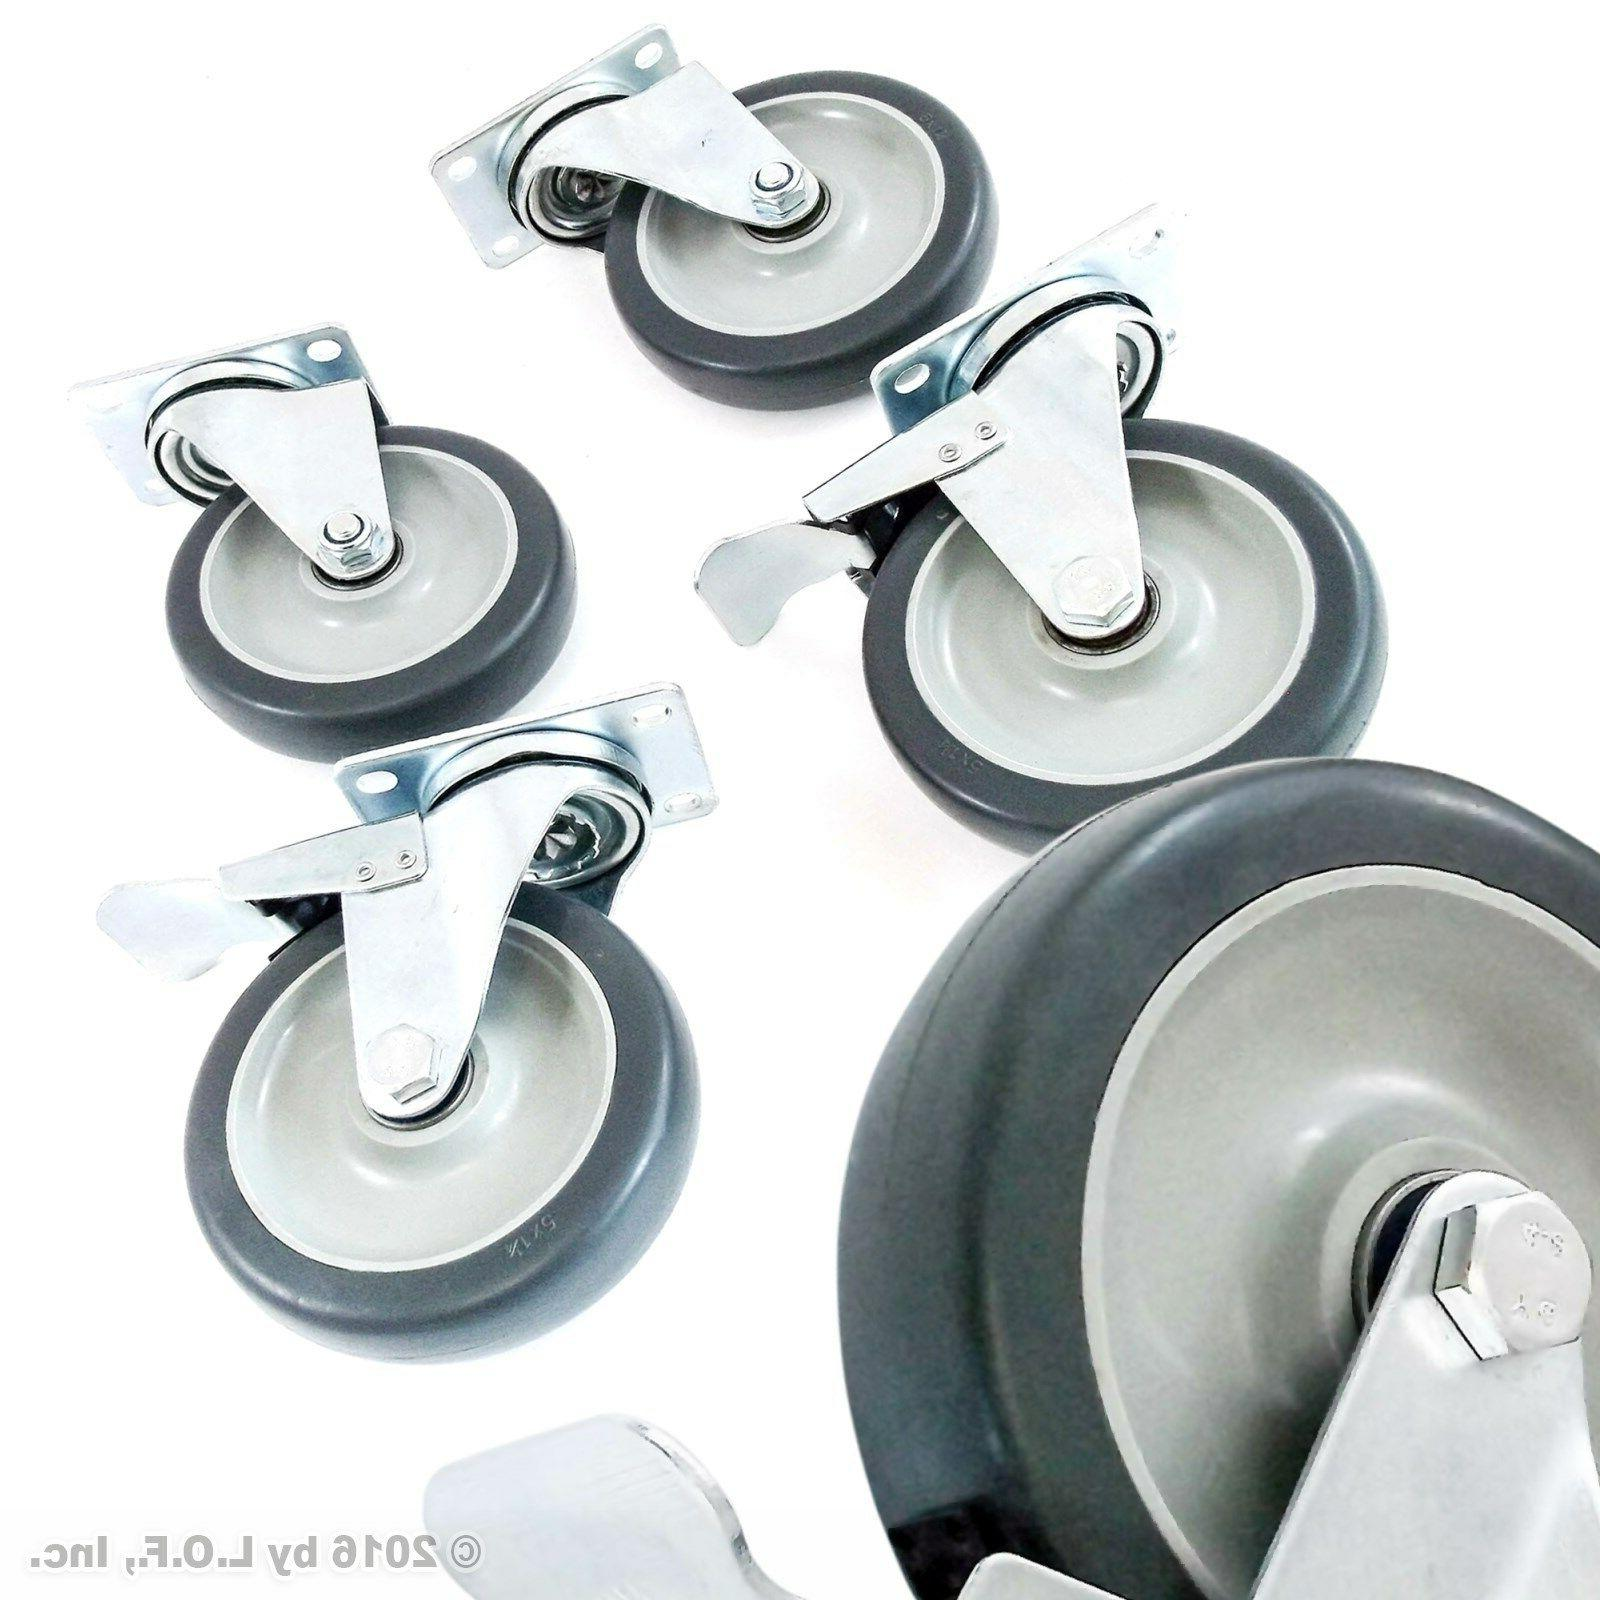 4 swivel plate casters set with 5